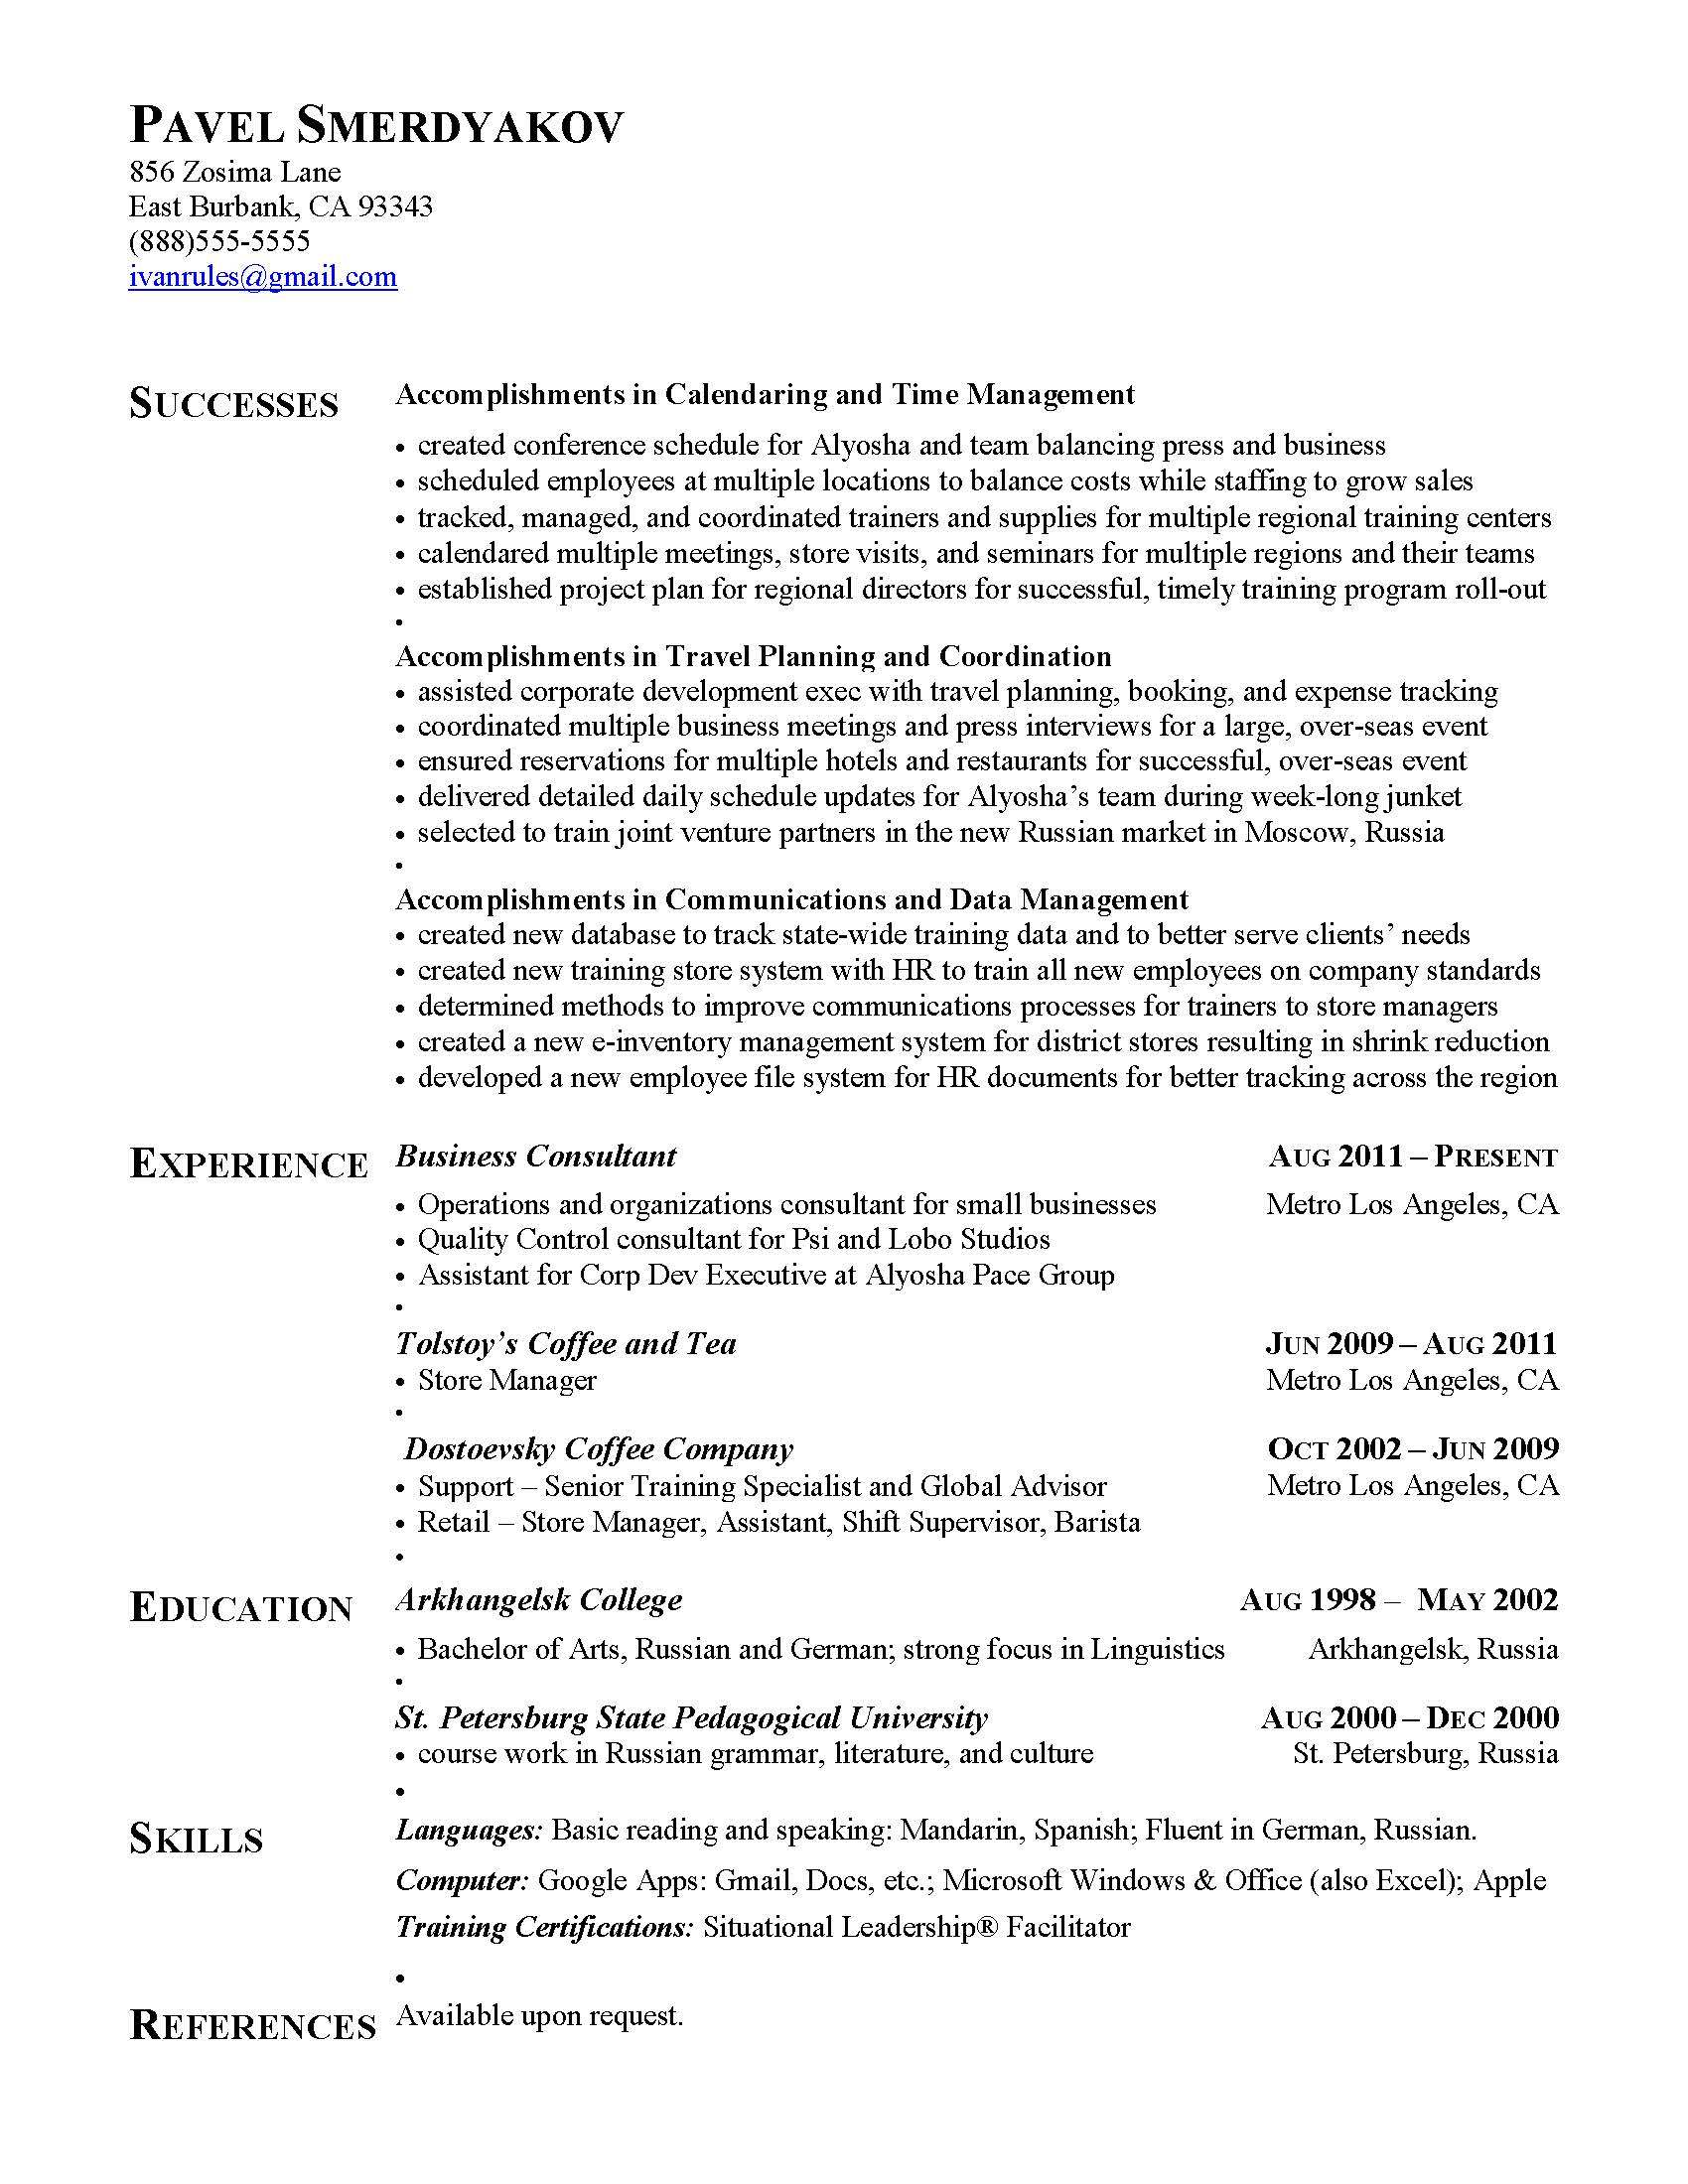 achievements on resume